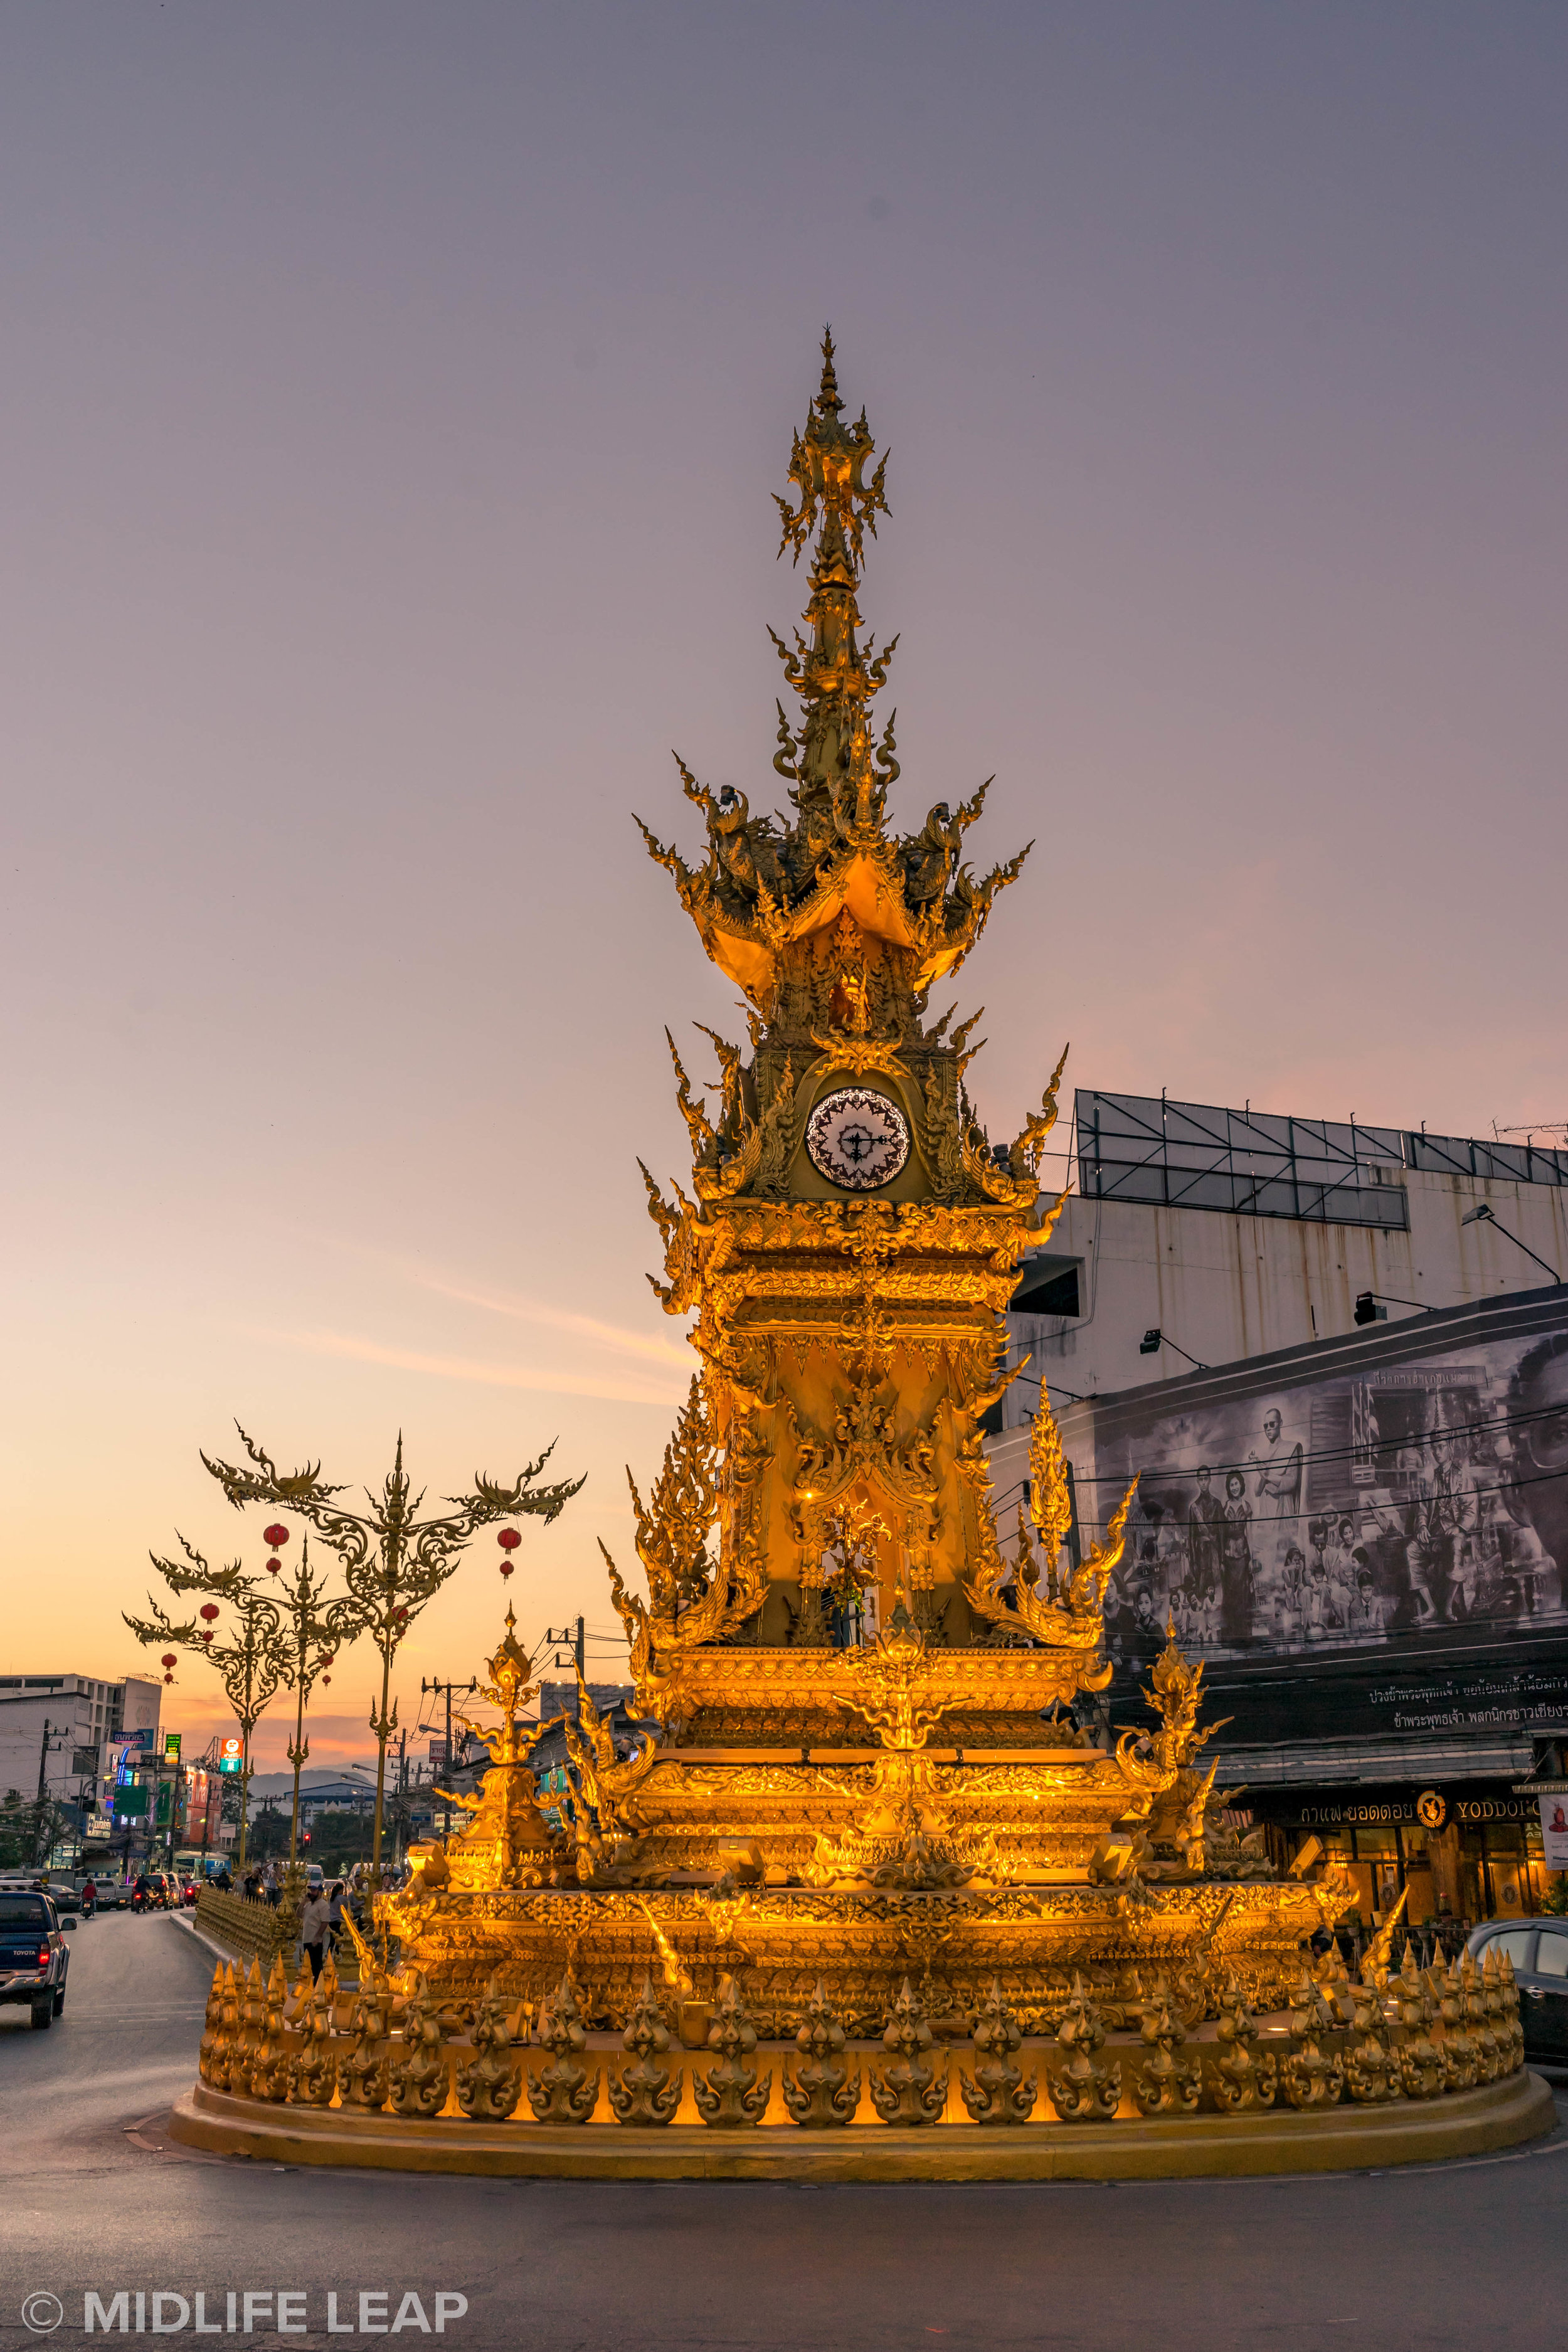 The Chiang Rai Clock Tower